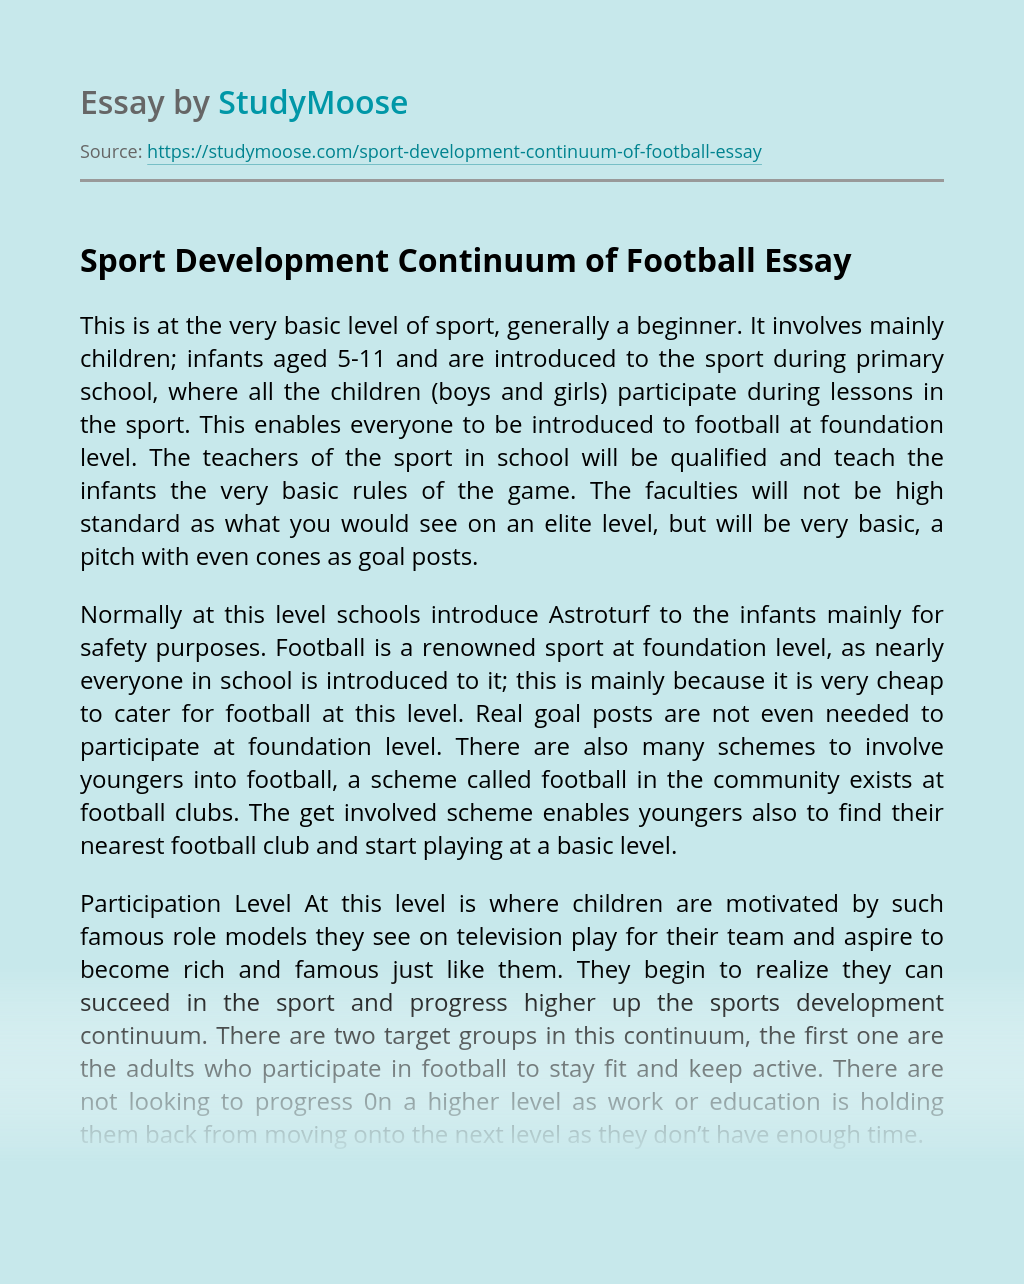 Sport Development Continuum of Football